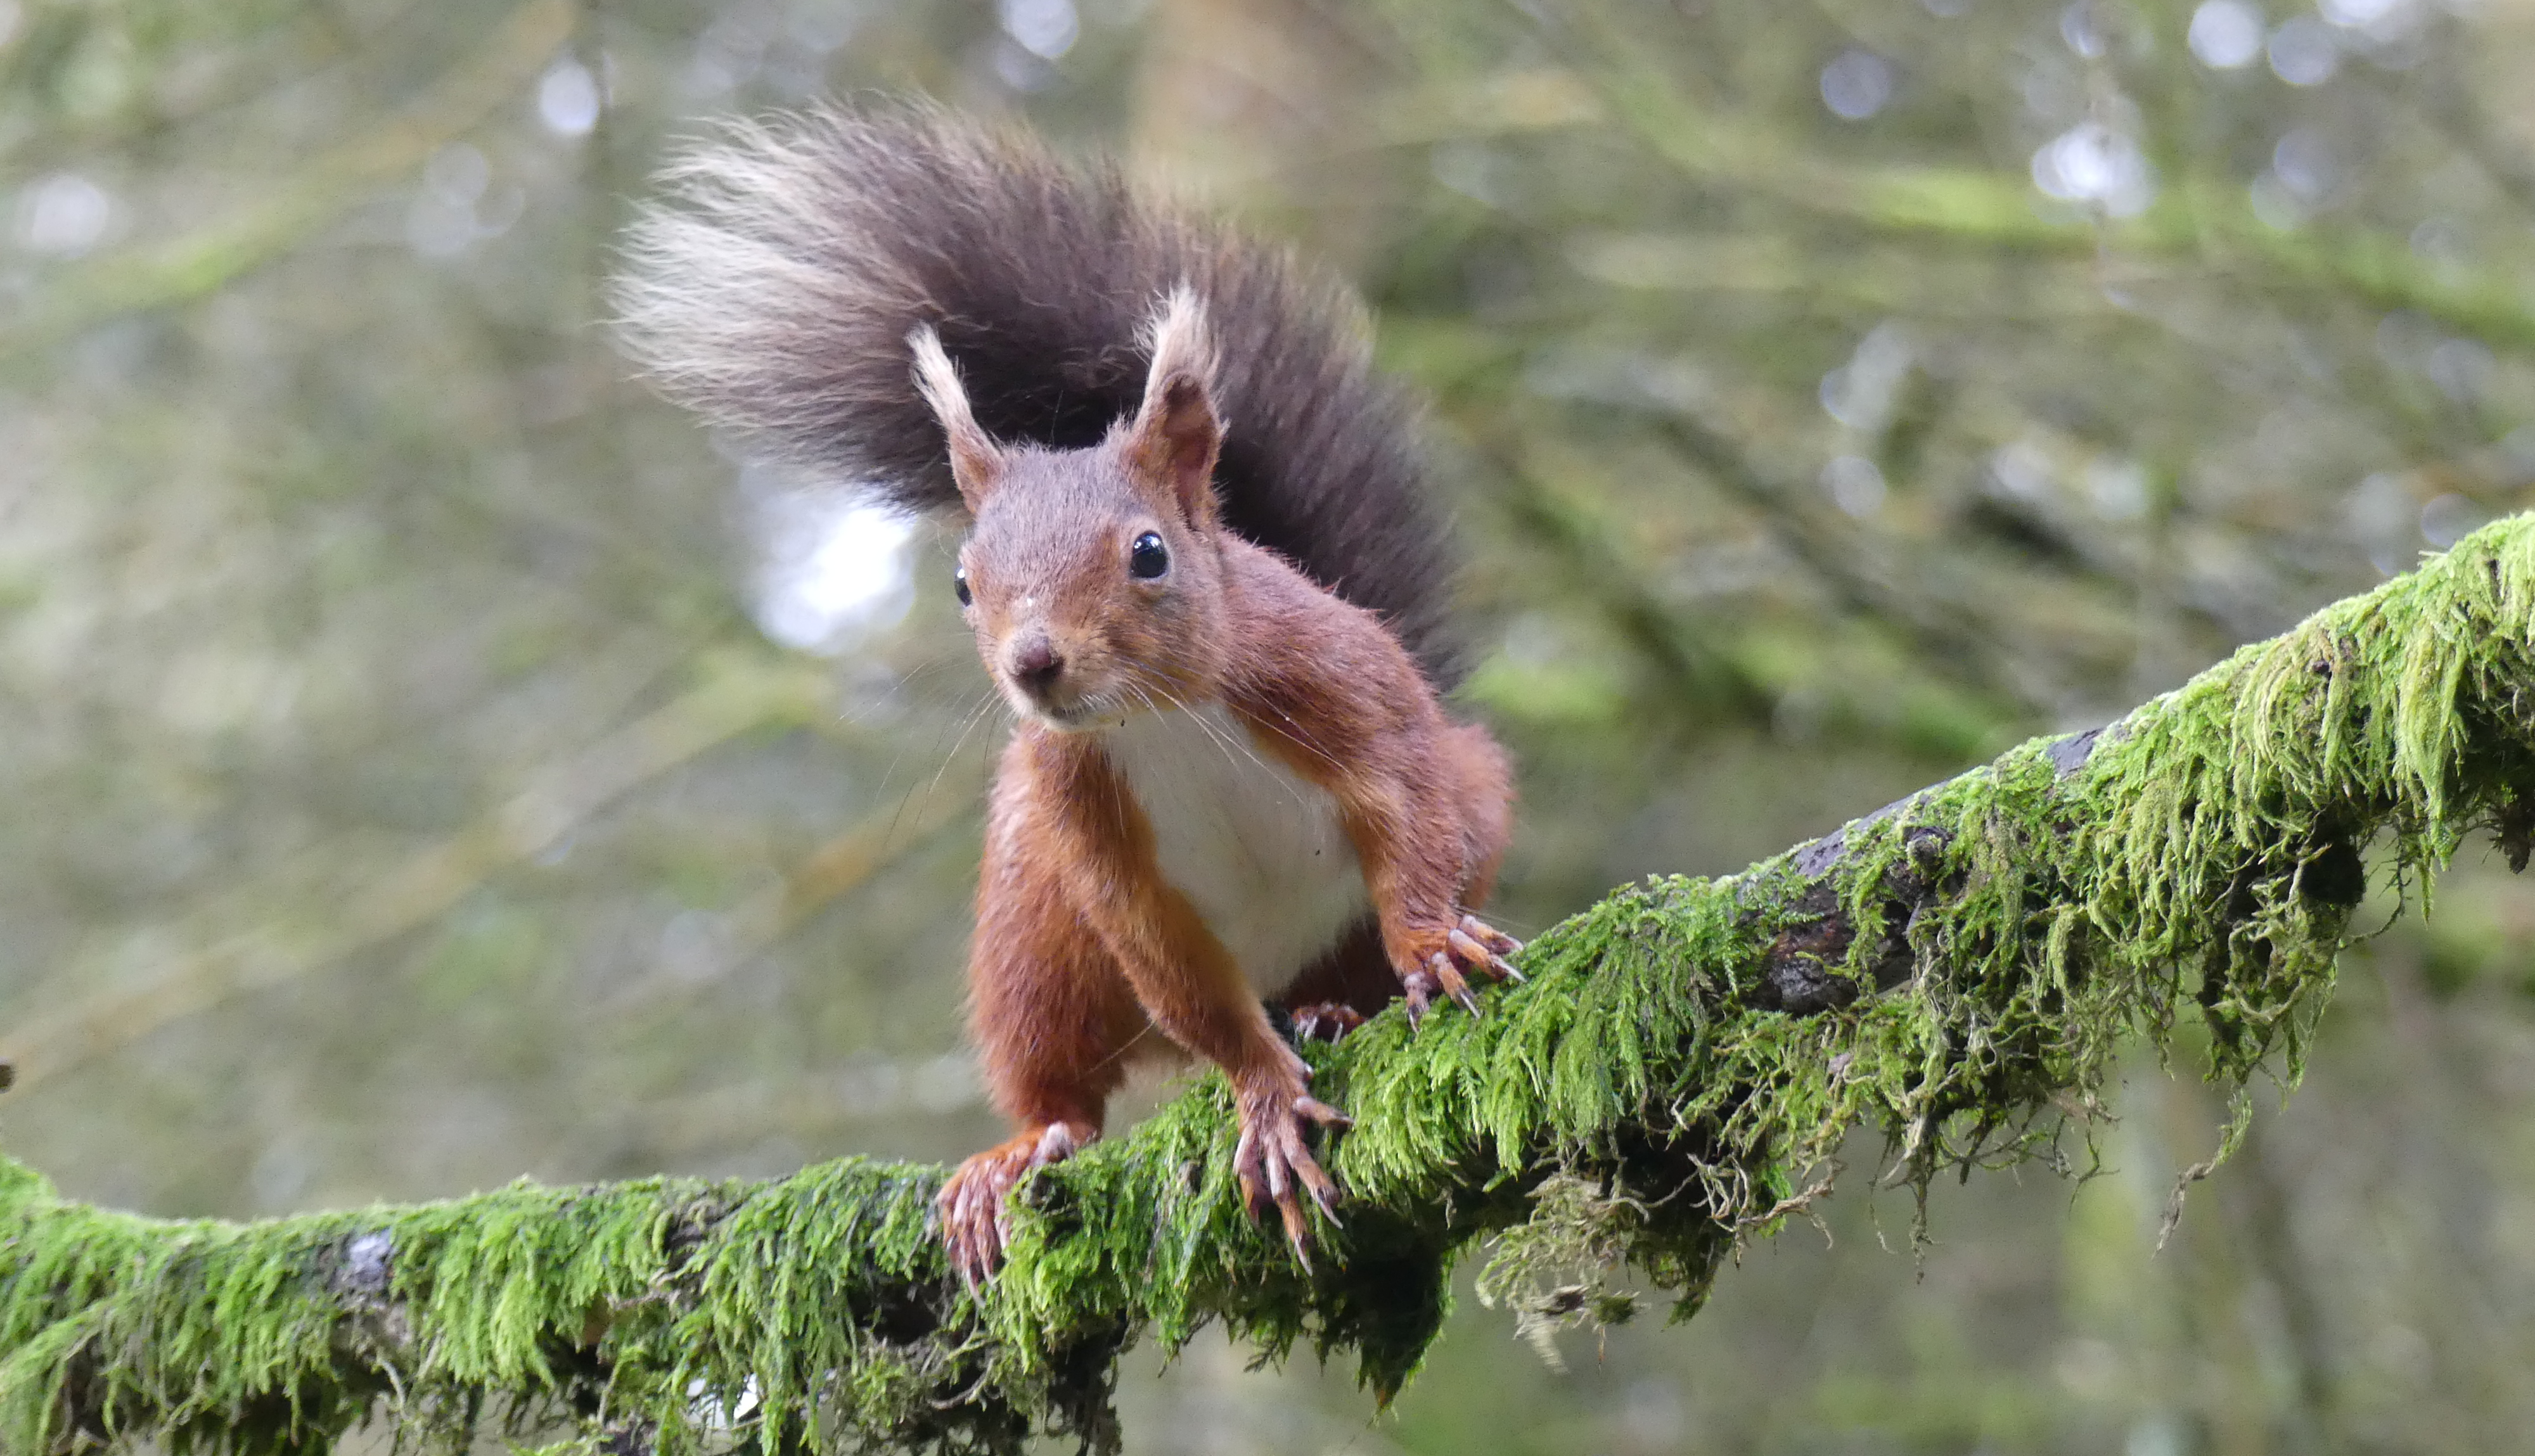 Red squirrel by Sarah Beatham